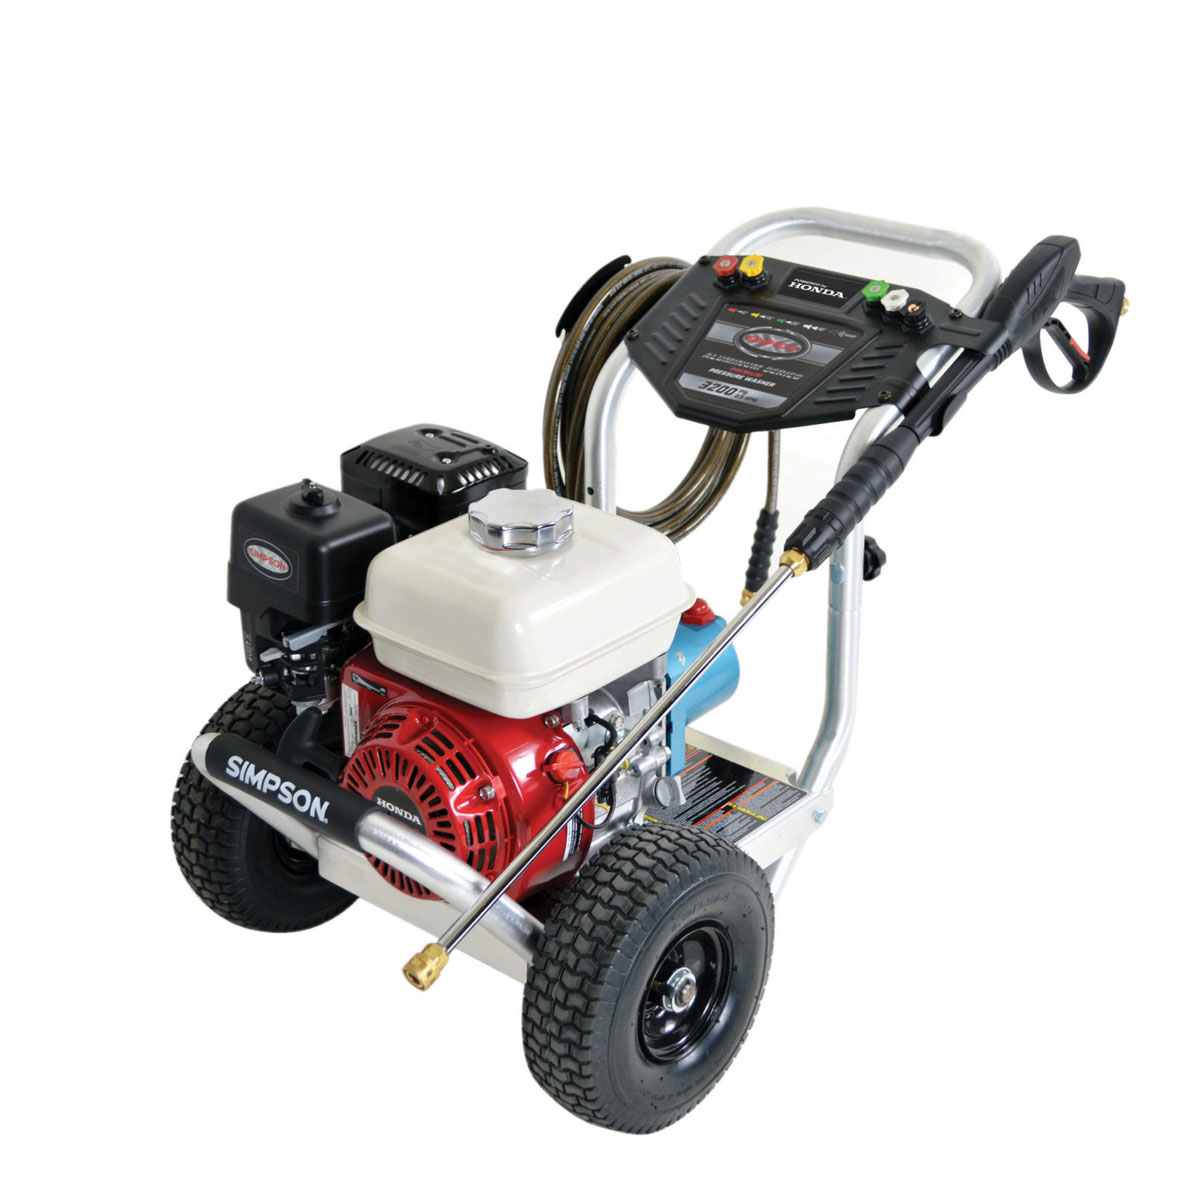 Simpson Commercial / Industrial Aluminum Gas Pressure Washer (3200 PSI @ 2.8 GPM) Powered by Honda / ALH3228-S, 60735